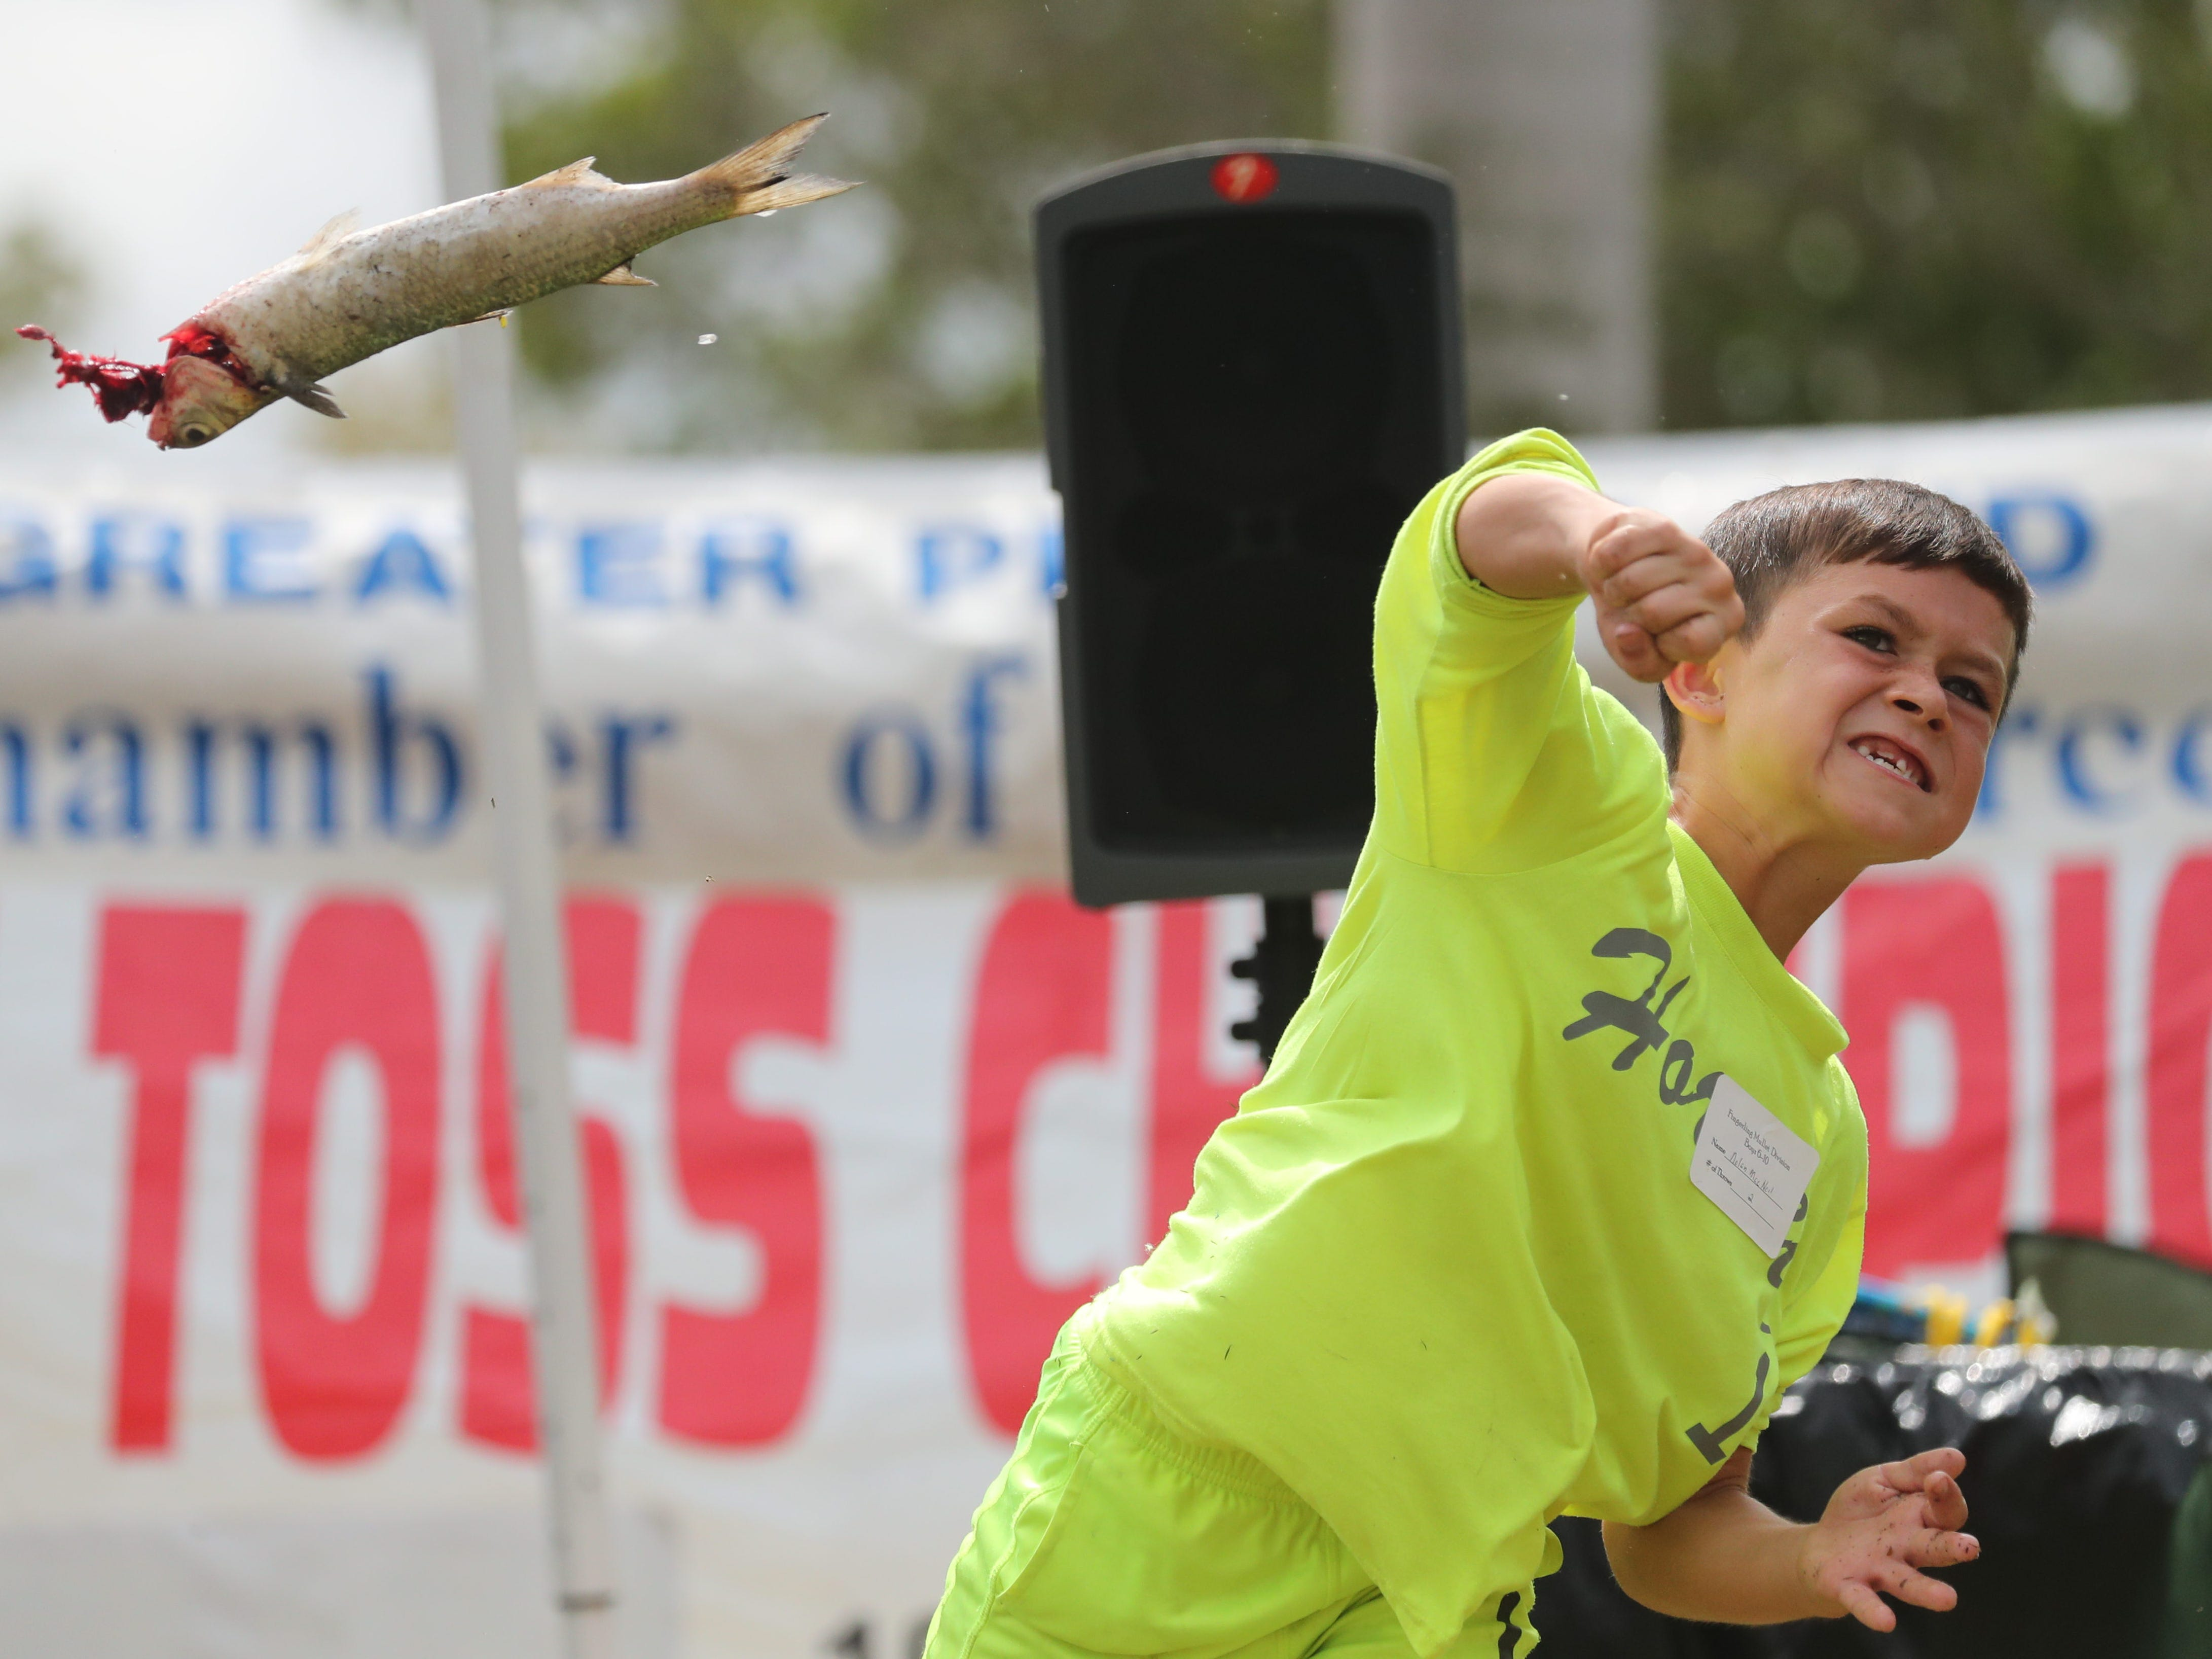 Competitors throw mullet at the 28th Annual Mullet Toss Championship in Matlacha on Saturday, March  16, 2019. Proceeds from the event benefit charities, organizations and individuals around the greater Pine Island area.